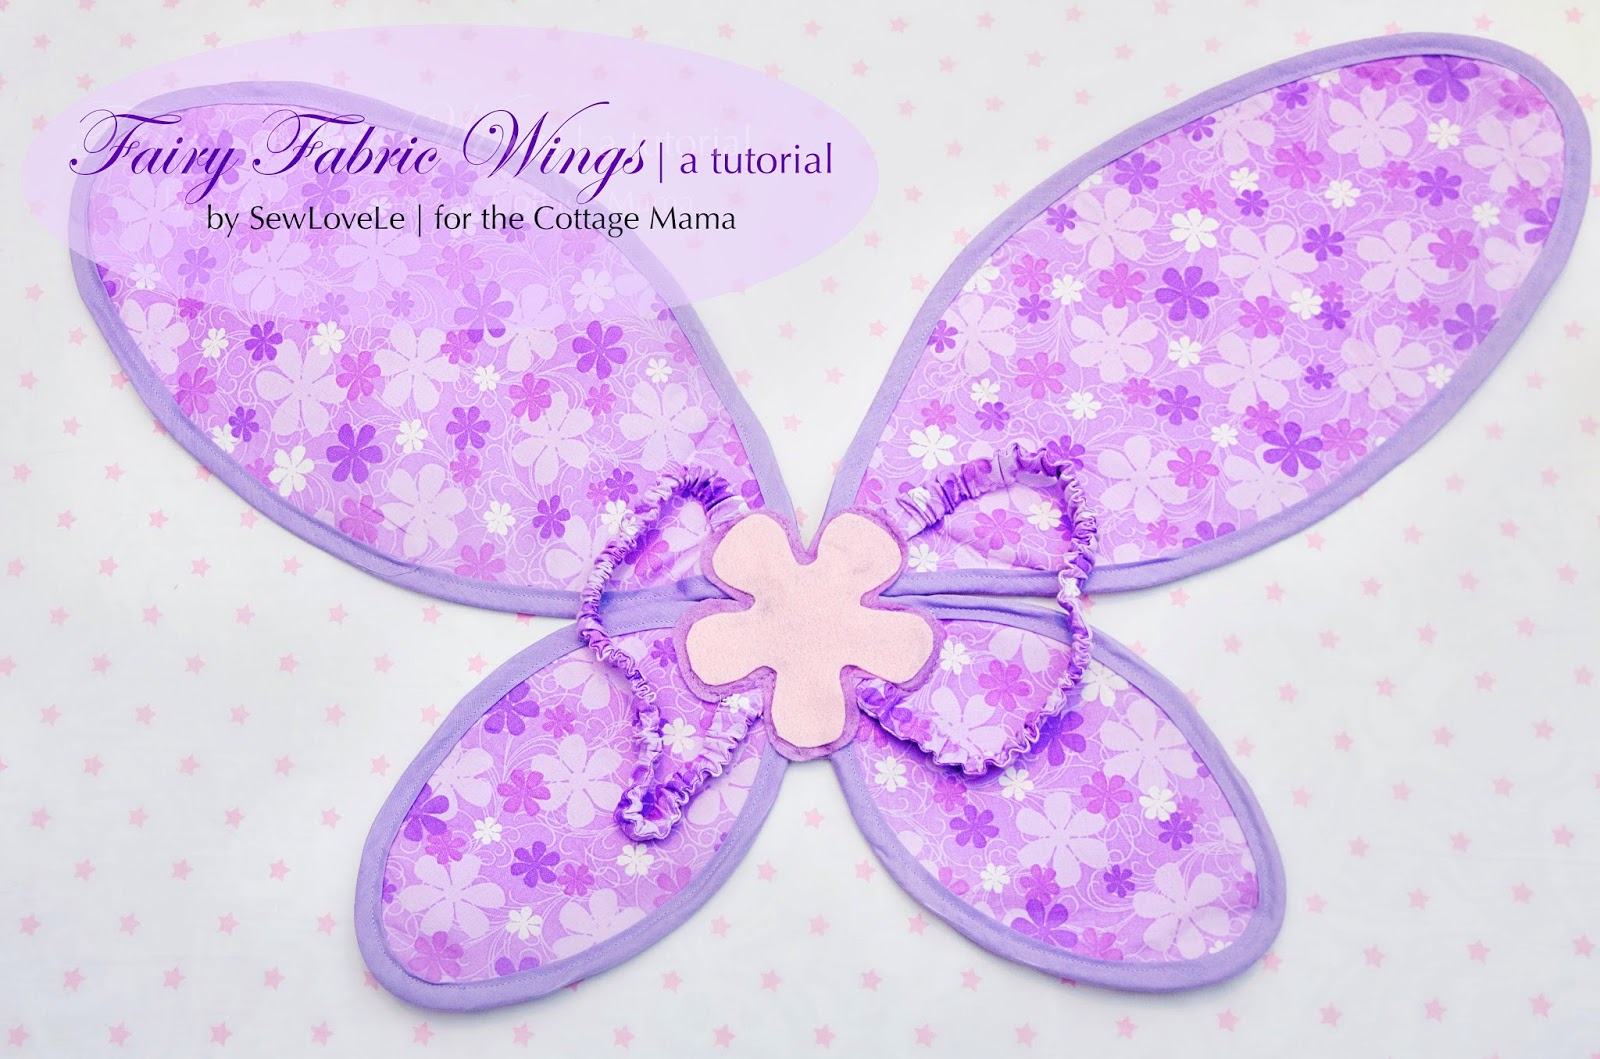 Free Fairy Fabric Wings Pattern and Tutorial. www.thecottagemama.com